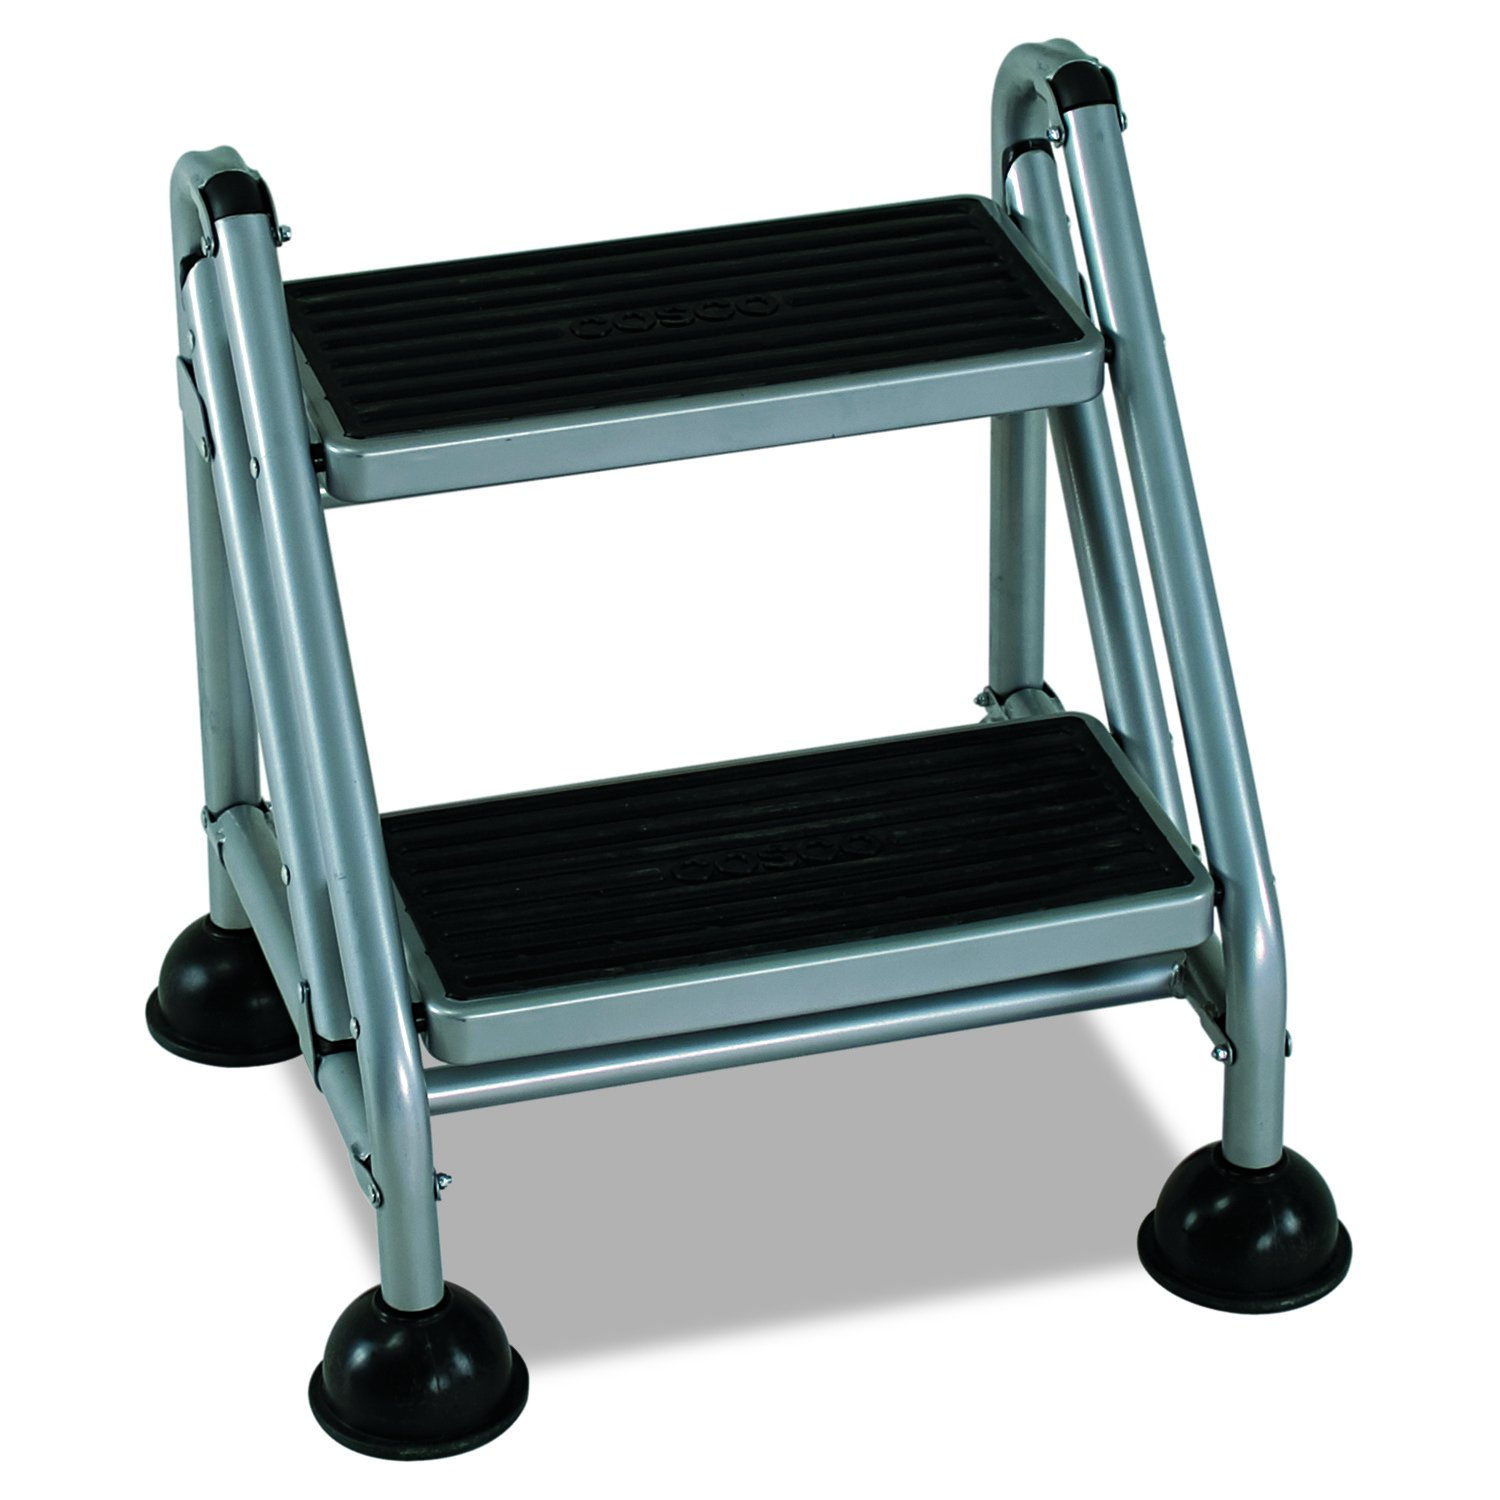 Cosco 2-Step Rolling Step Ladder, Grey